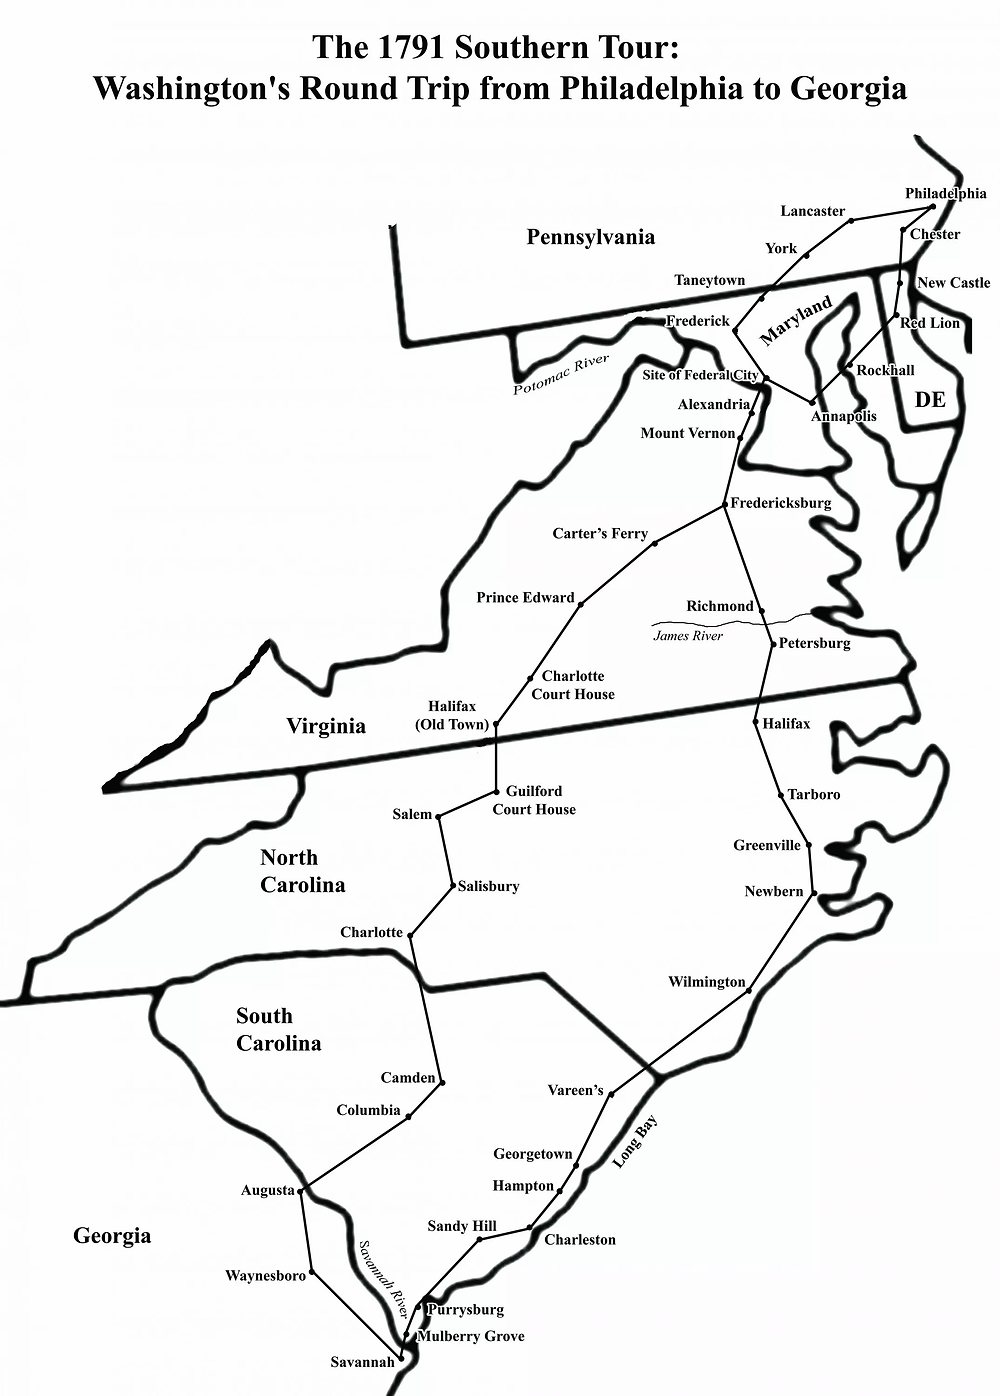 Map of the Route of Washington's Southern Tour